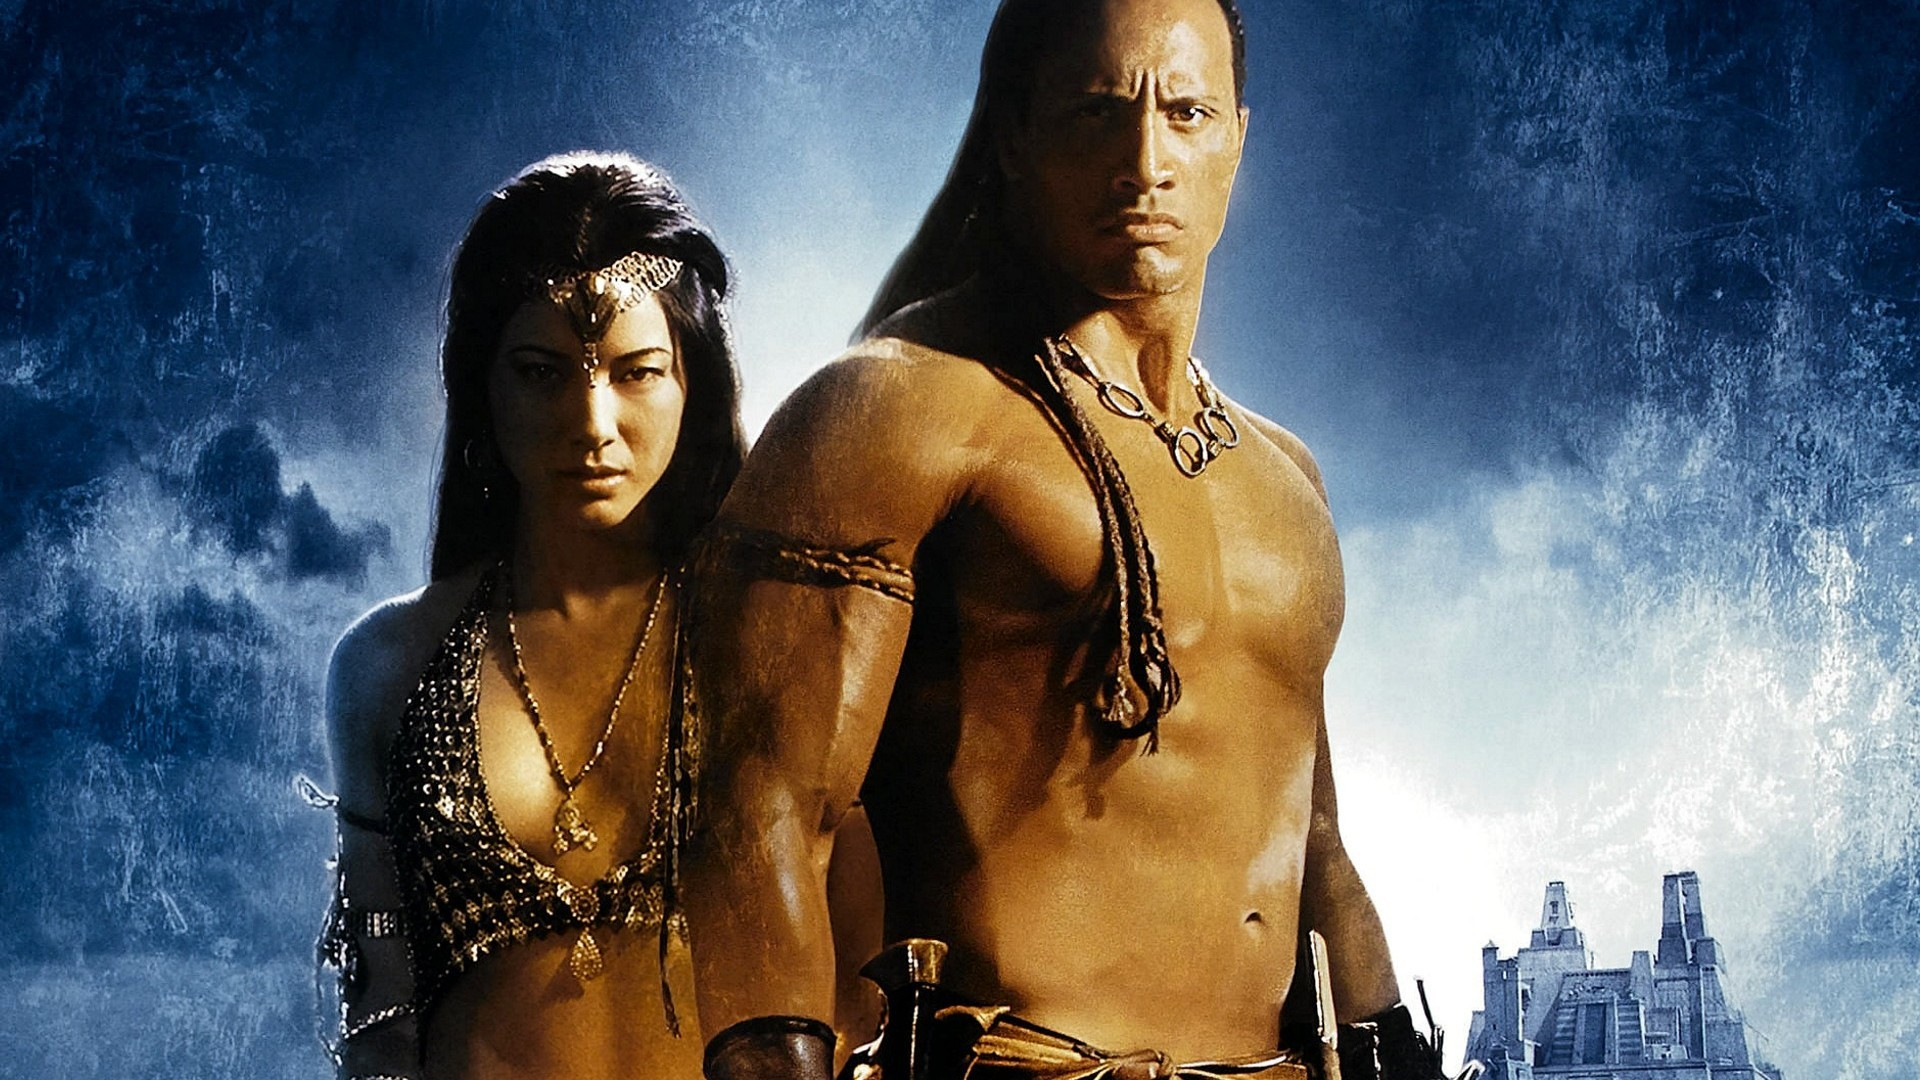 The scorpion king movies hindi dubbed download